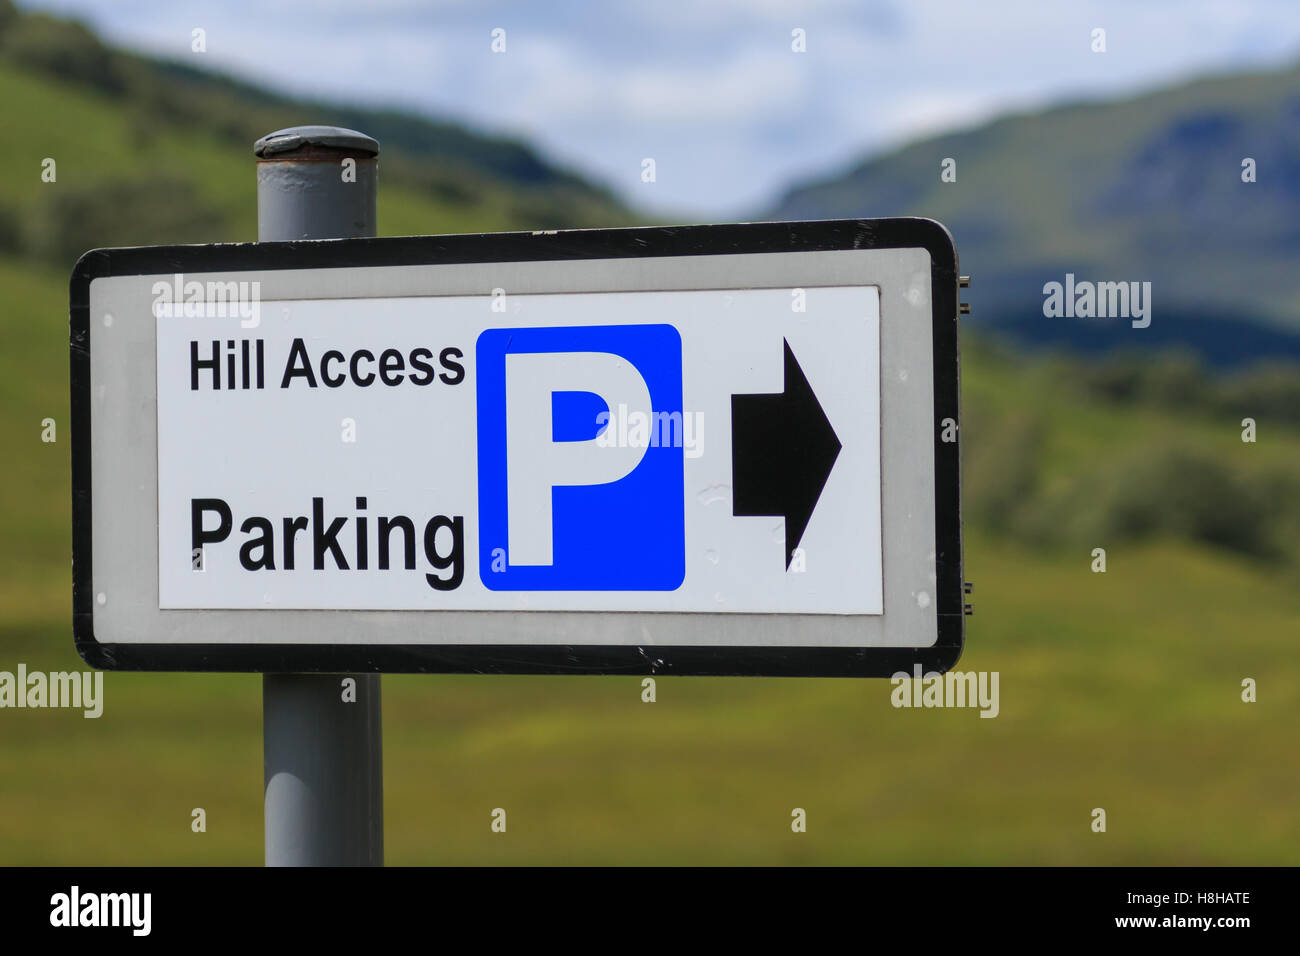 Oblong Hill Access Parking sign with directional arrow - Stock Image